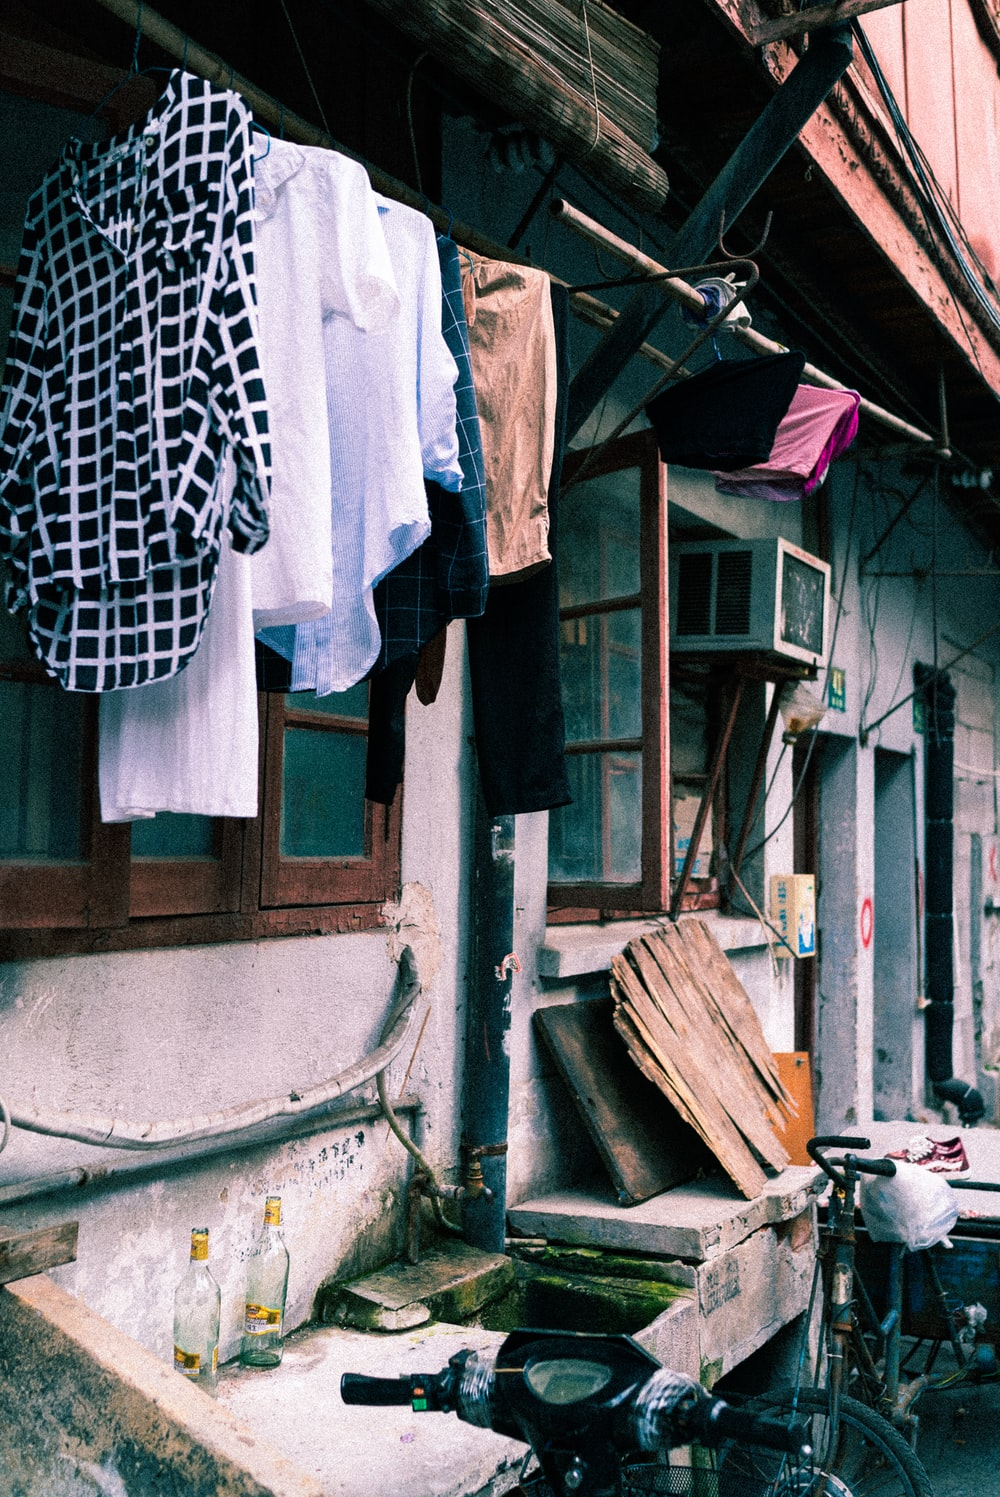 assorted clothes hanged on clothesline outside window